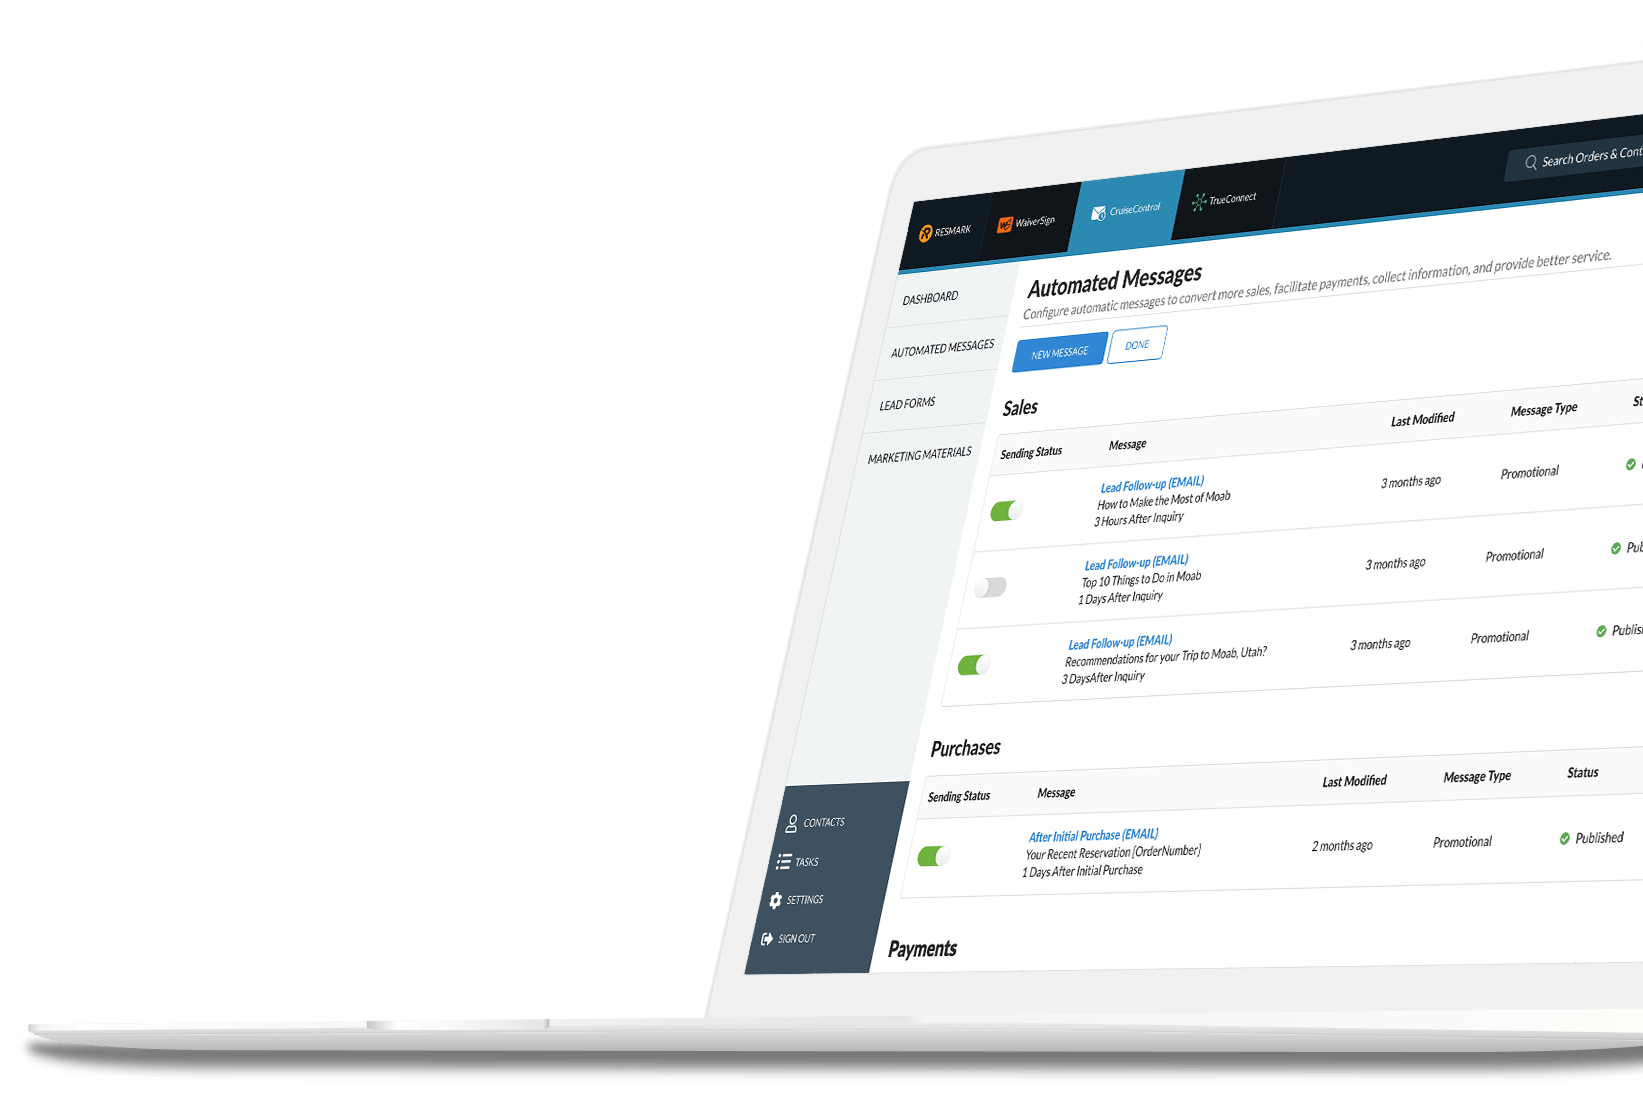 RESMARK automated emails dashboard.